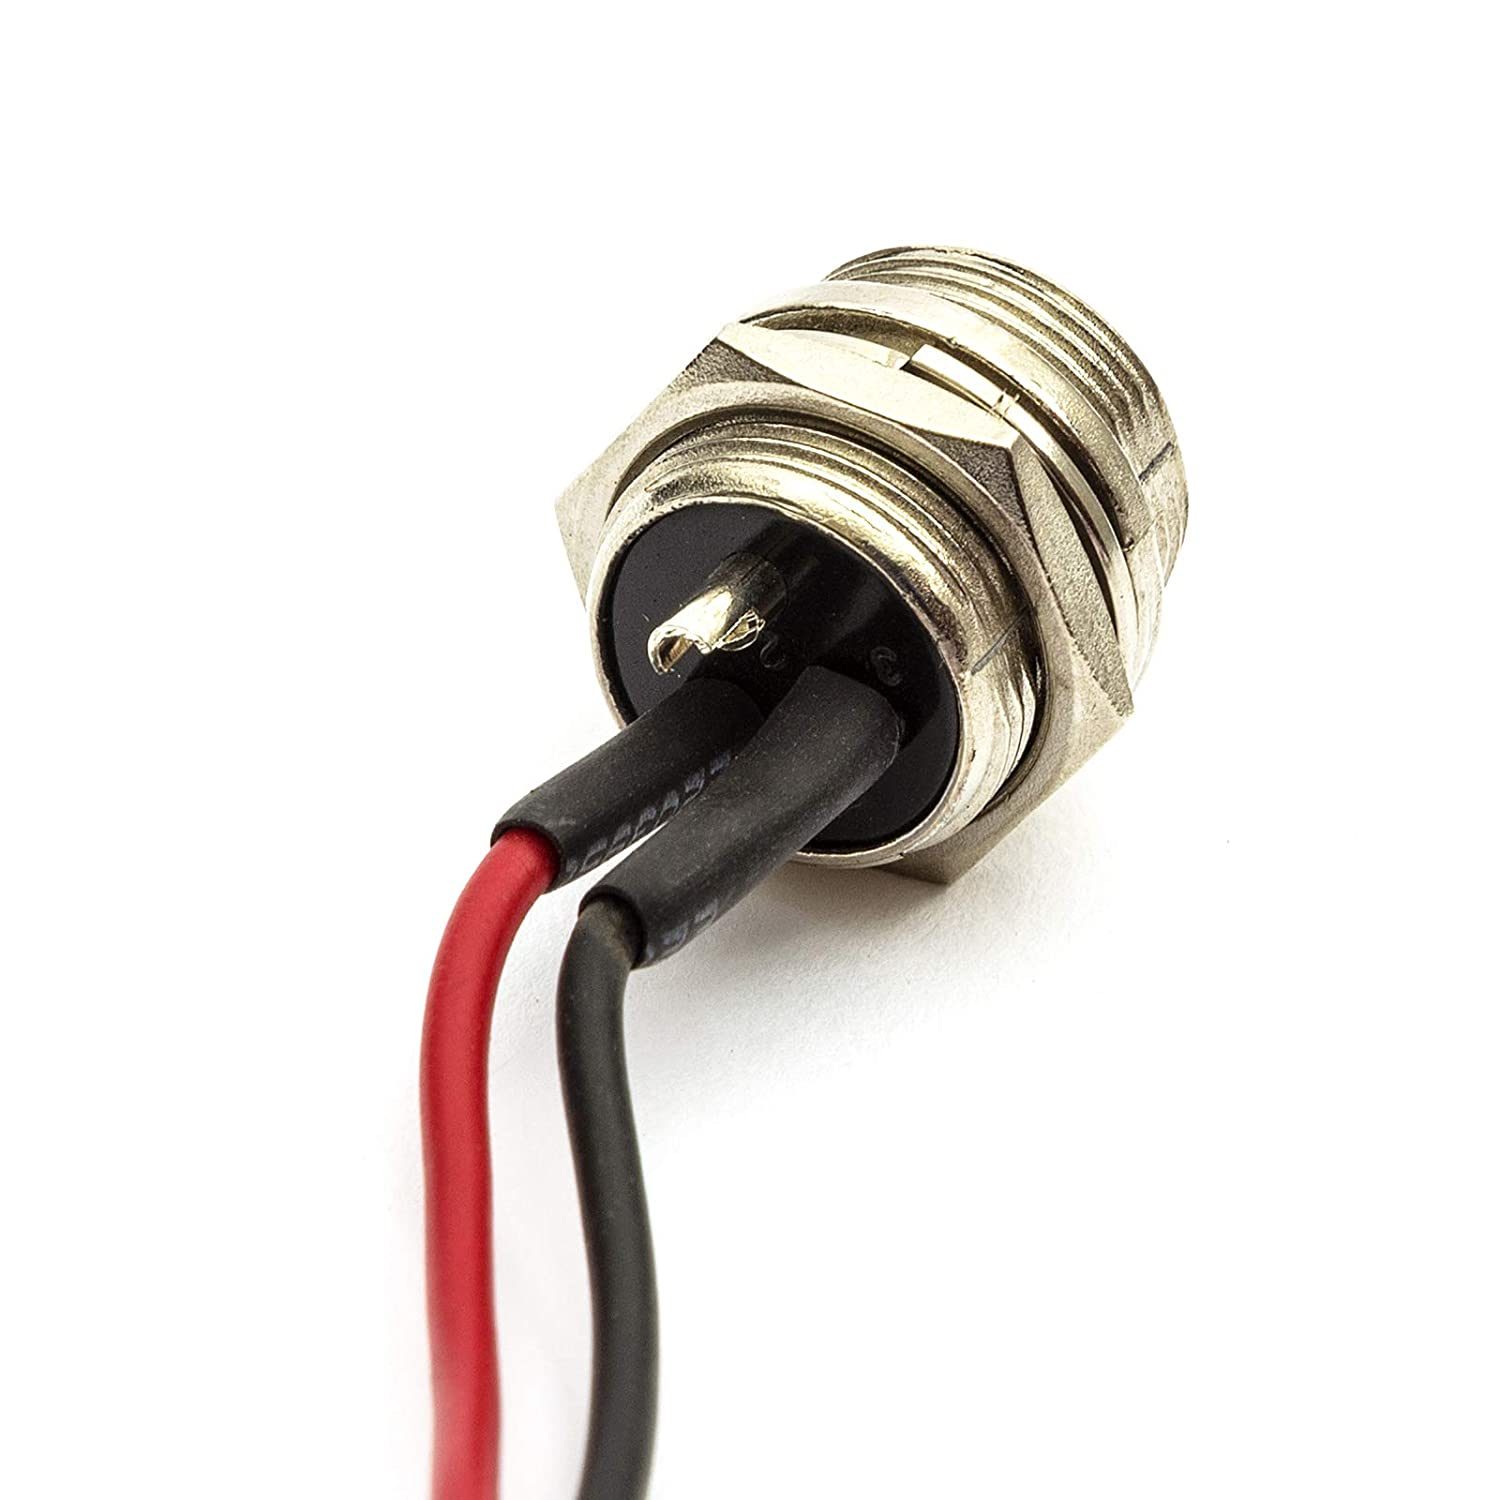 General Electric Scooter Charger Plug 3 Pin Male 2 Wire